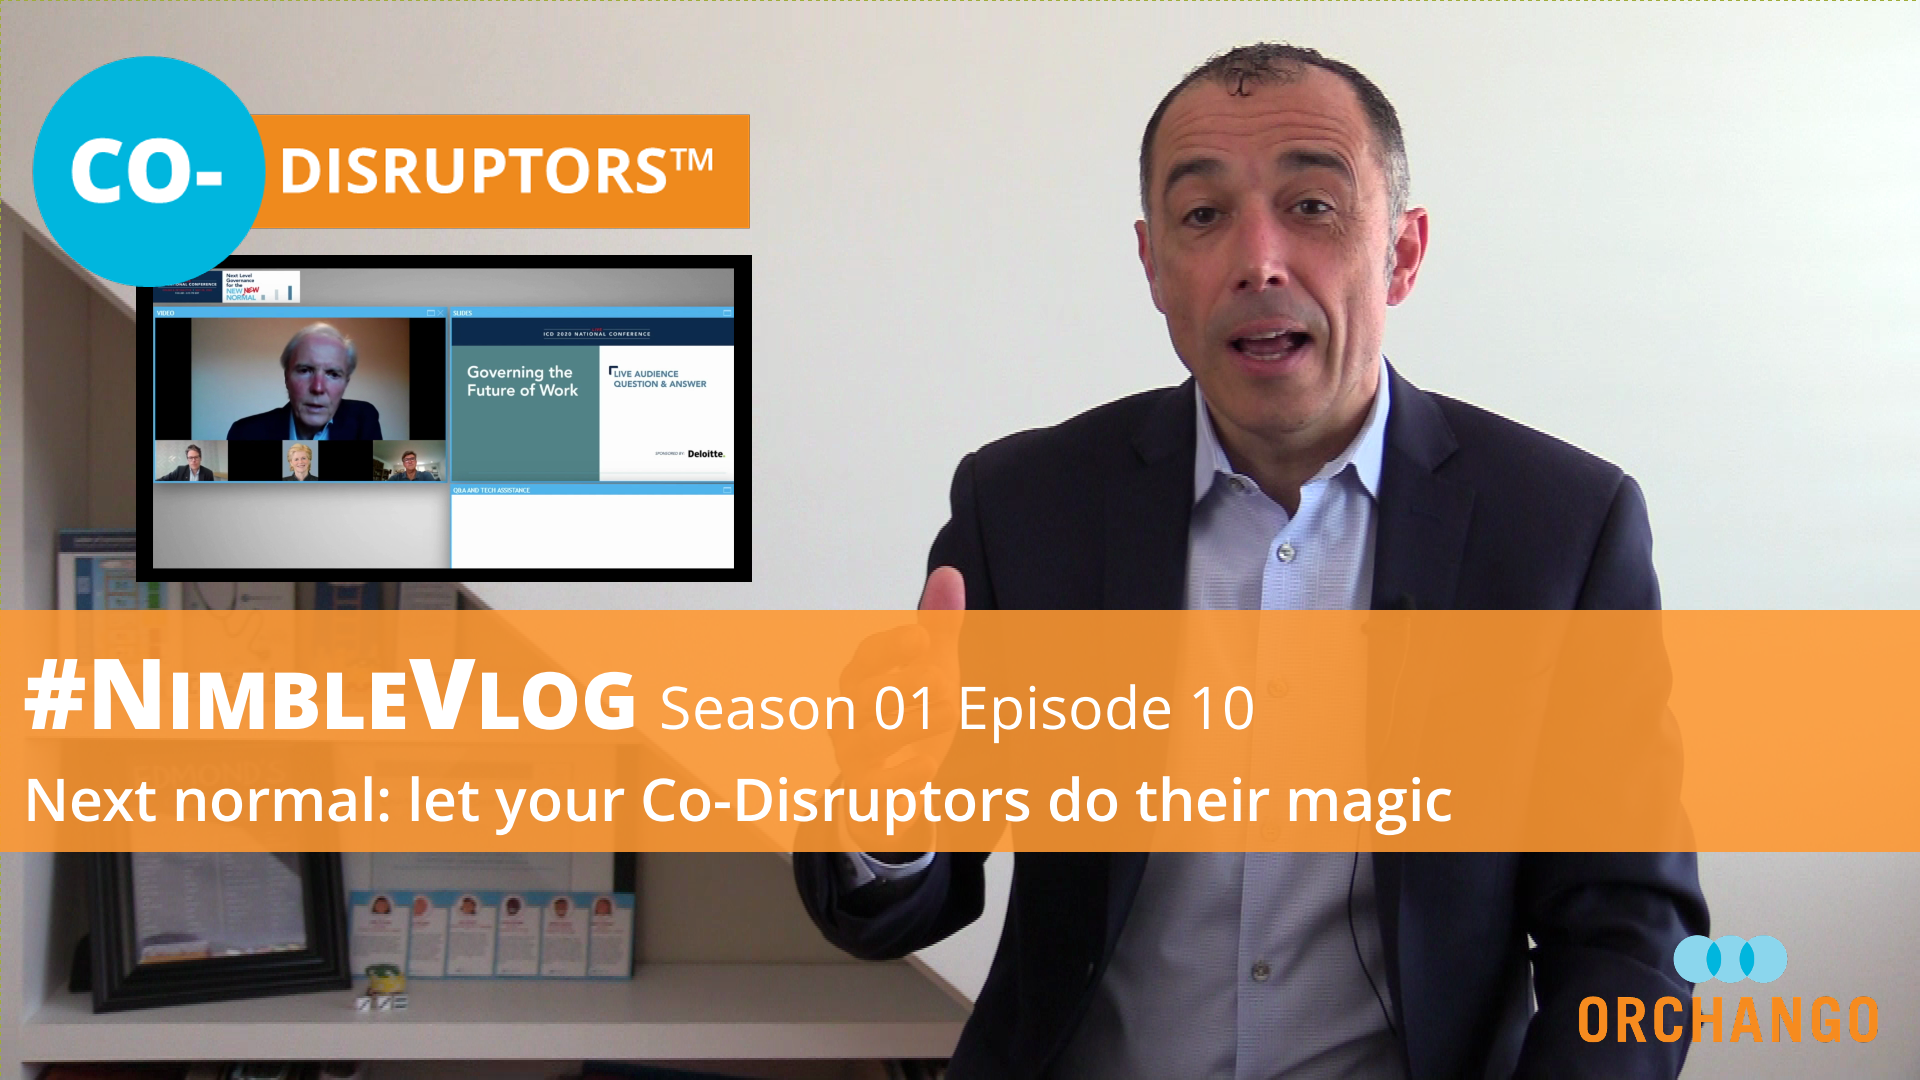 NimbleVlog S01 E10 - Next Normal: Let Your Co-Disruptors Do Their Magic